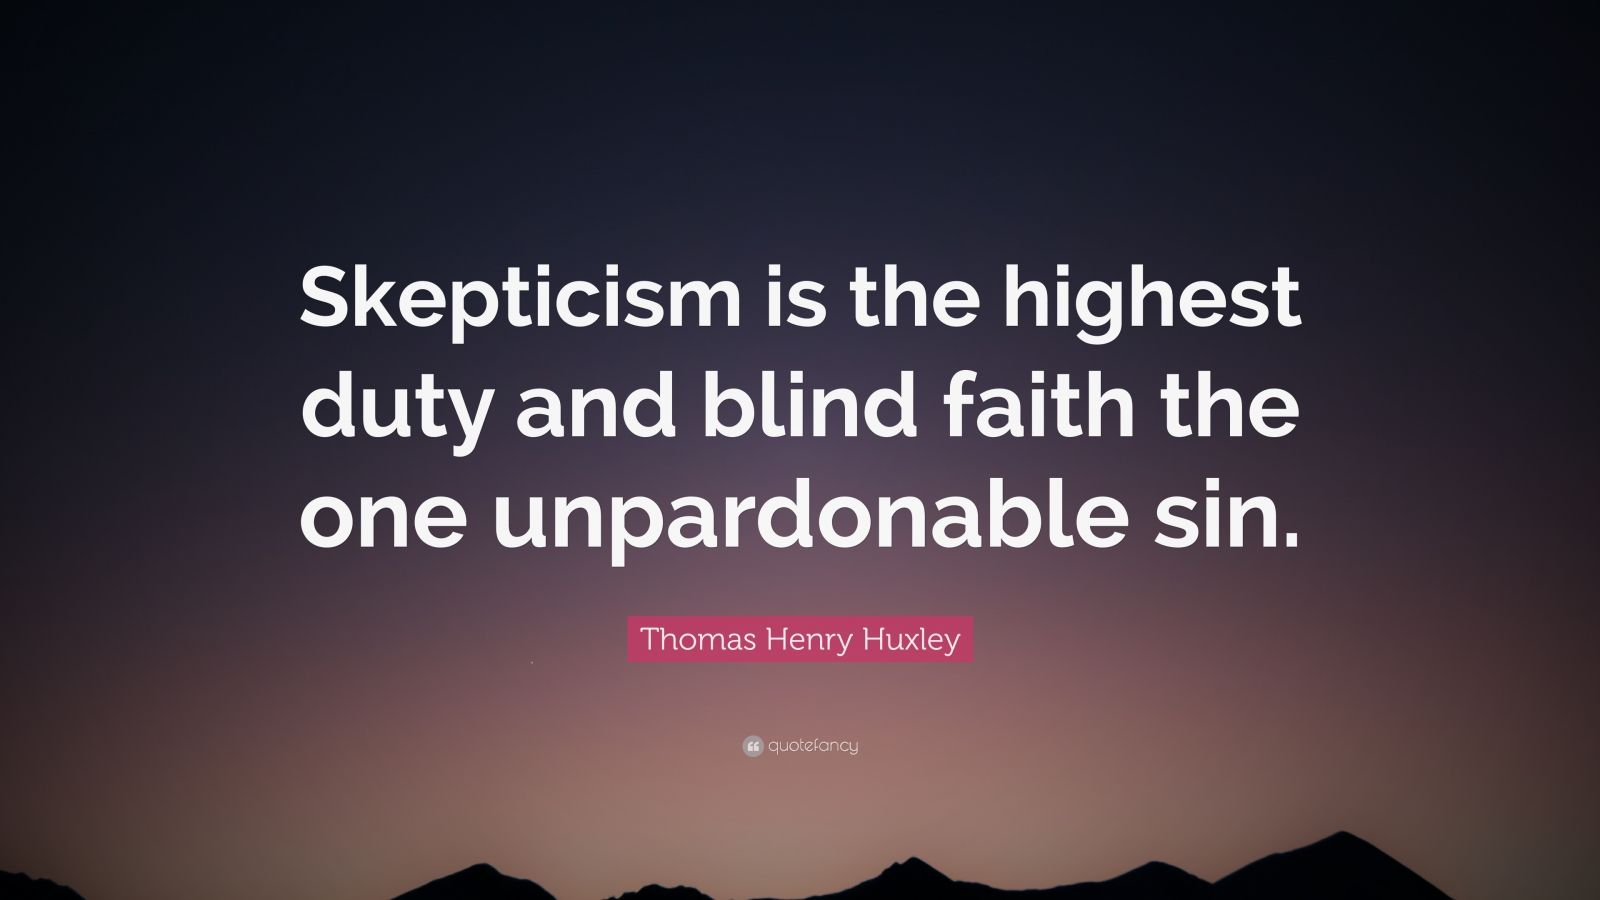 """Thomas Henry Huxley Quote: """"Skepticism is the highest duty and blind faith the one unpardonable sin."""""""